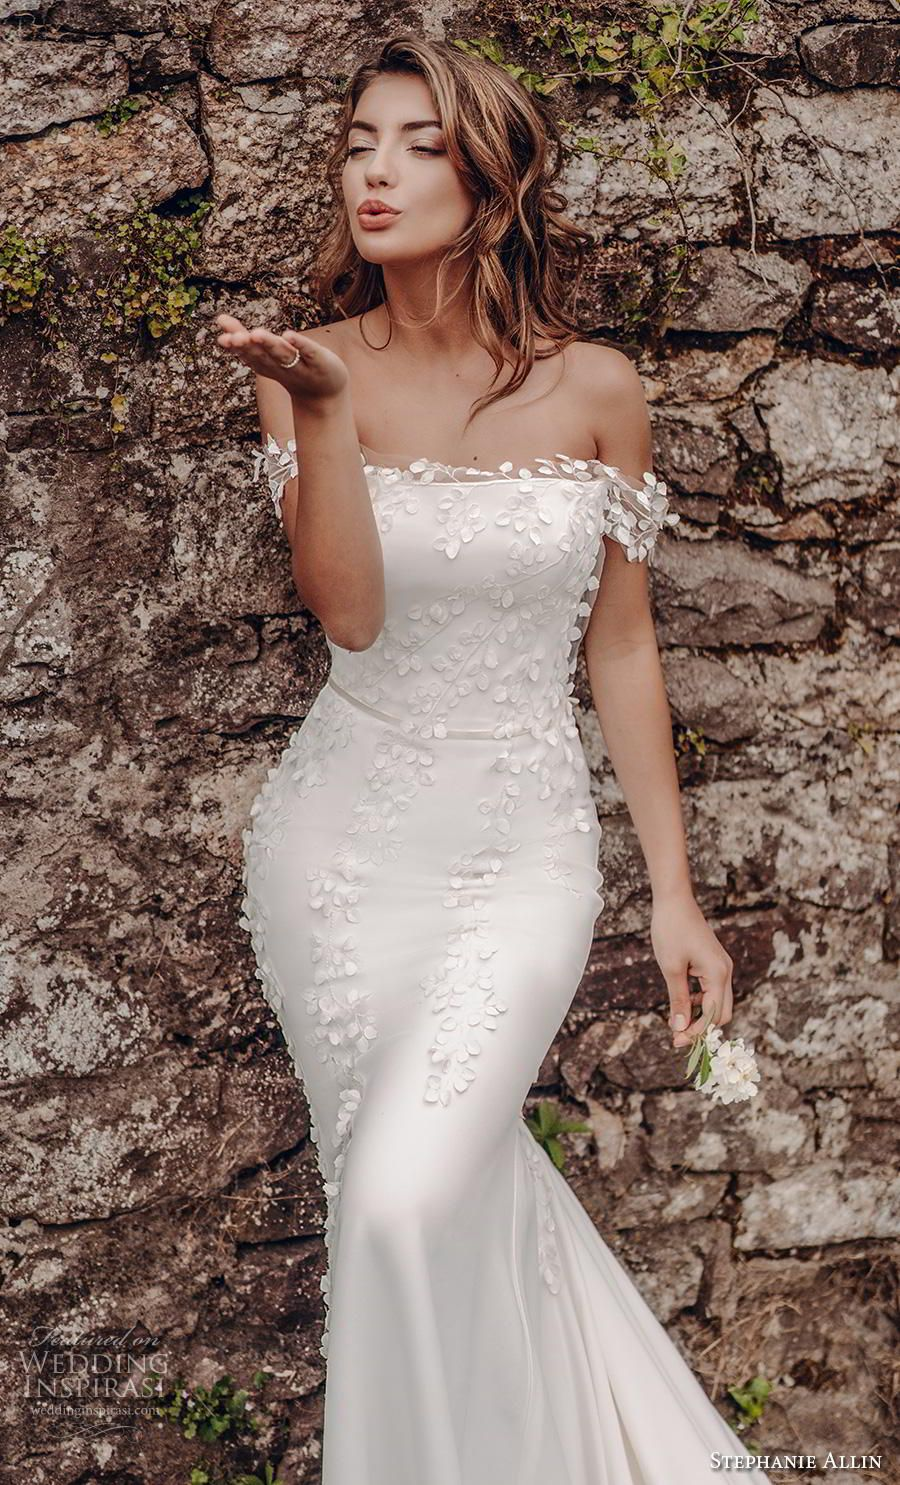 Fashion New Wedding Dresses Fatiz Bridal Emporio Price Wedding Dress With Pockets Say Yes To The Dress Curvy Brides Places To Buy Mother Of The Bride Dresses Mother Of The Bride Boutiques Near Me Free Shipping